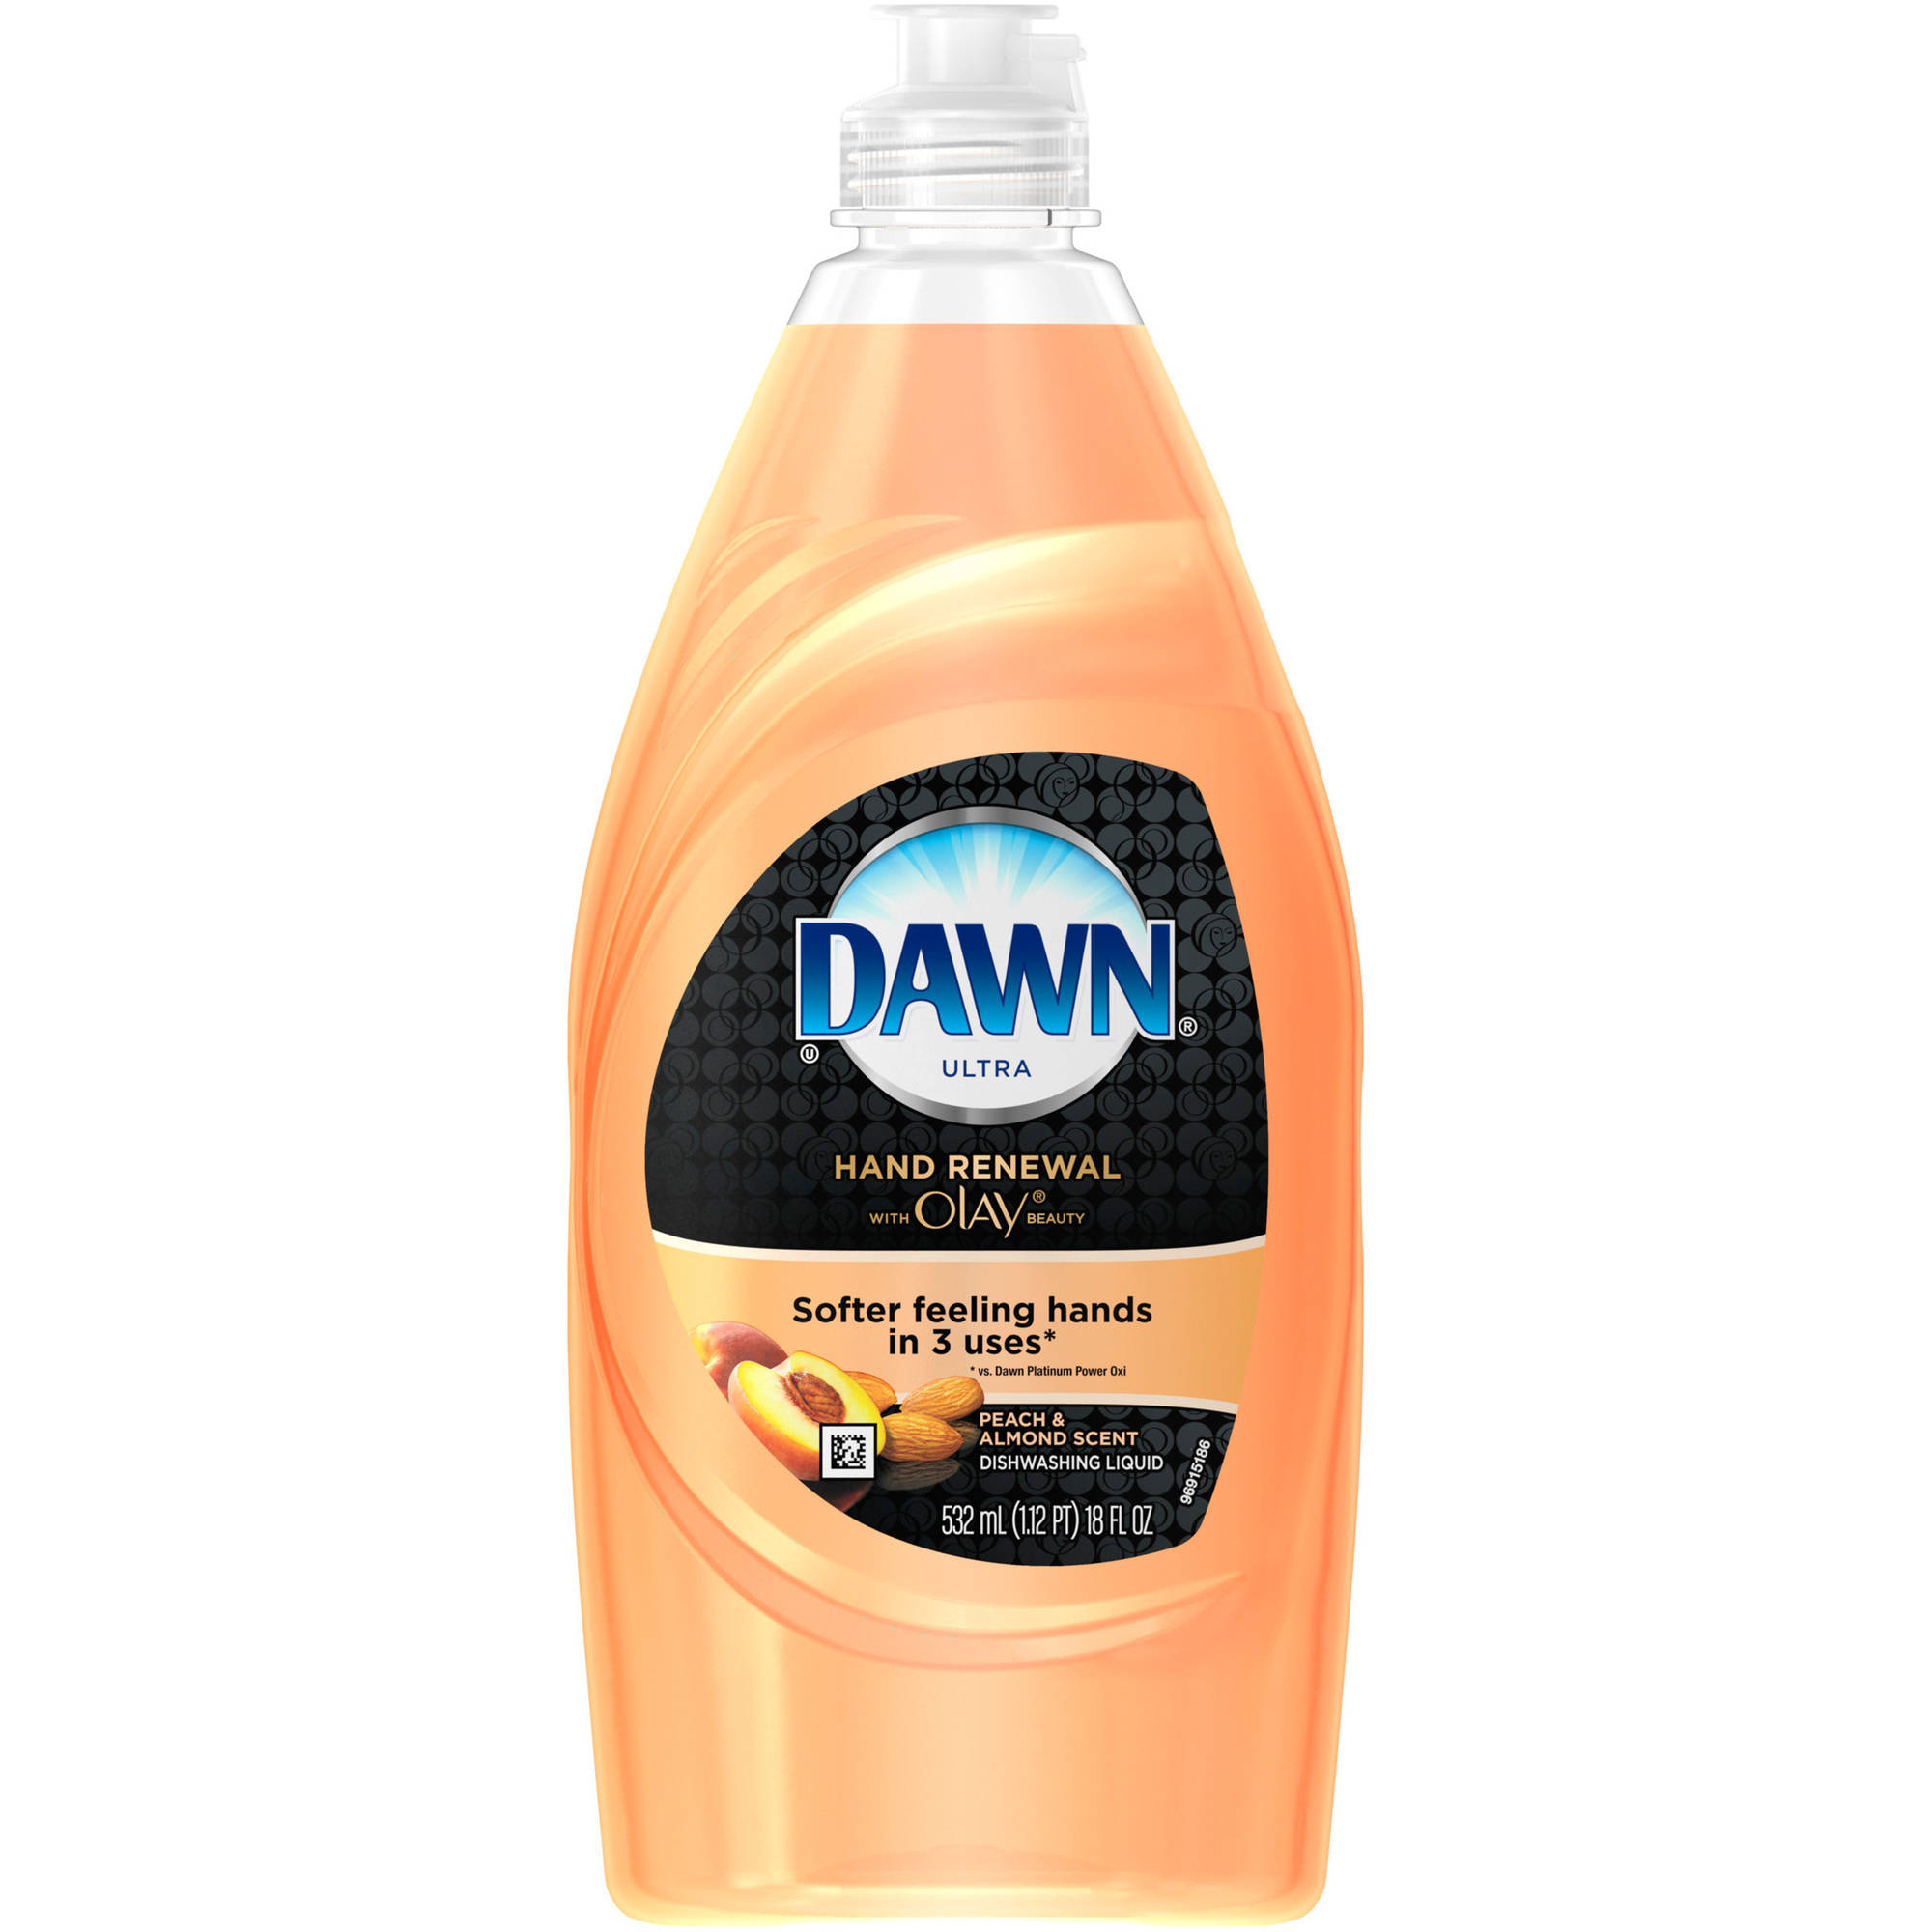 Dawn Hand Renewal with Olay Peach & Almond Dishwashing Liquid, 18 fl oz